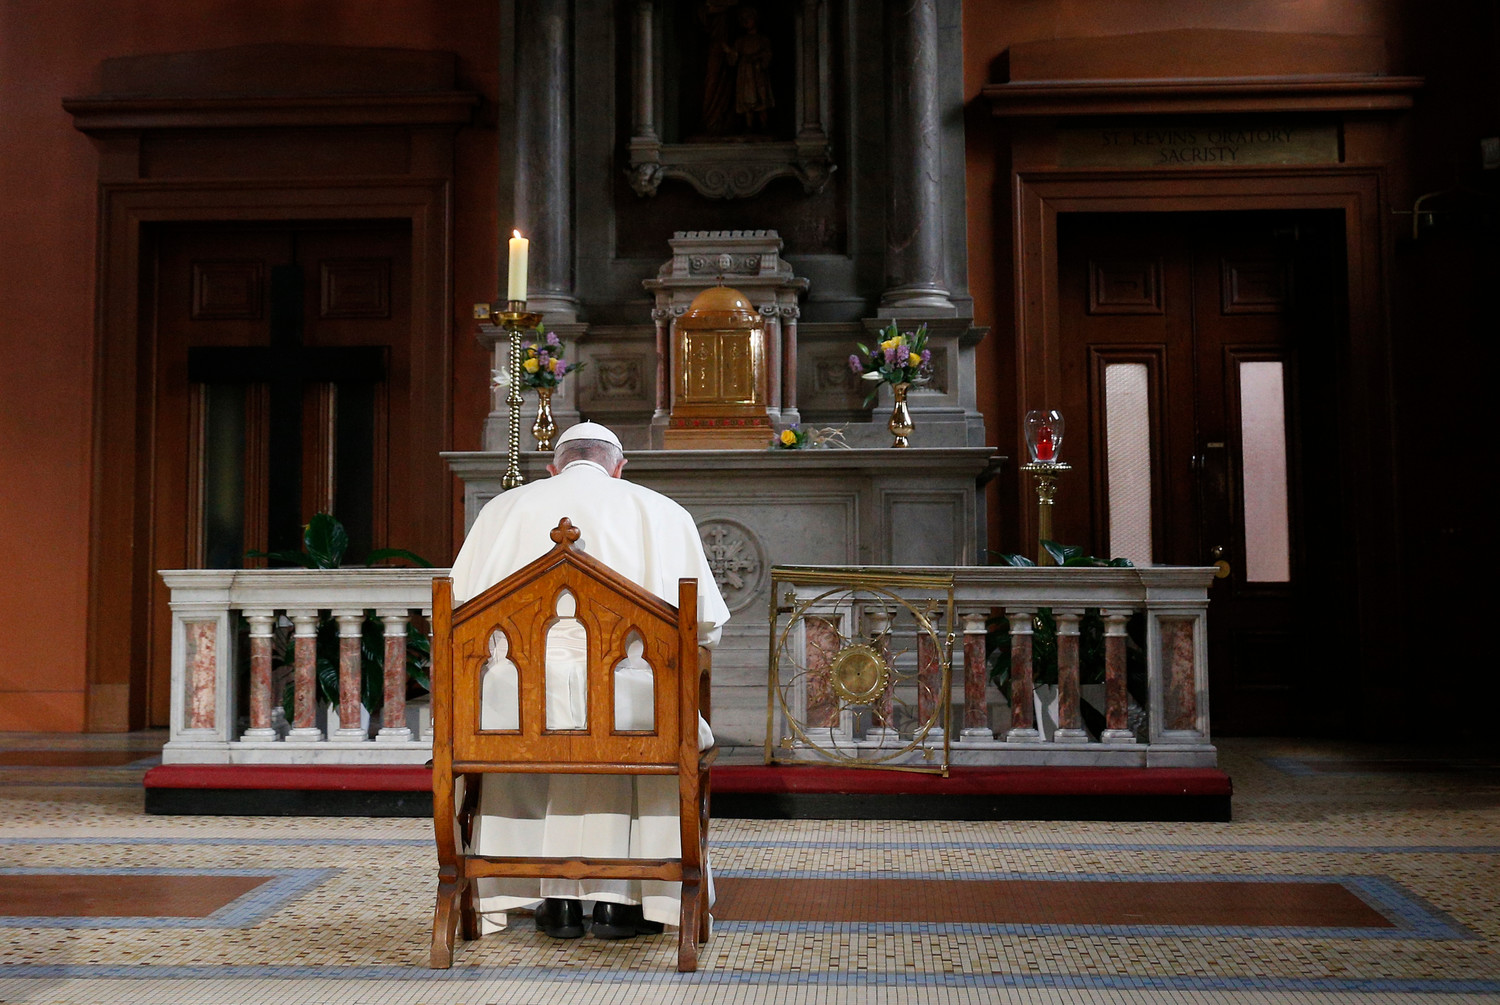 Pope Francis prays in front of a candle in memory of victims of sexual abuse as he visits St. Mary's Pro-Cathedral in Dublin Aug. 25.